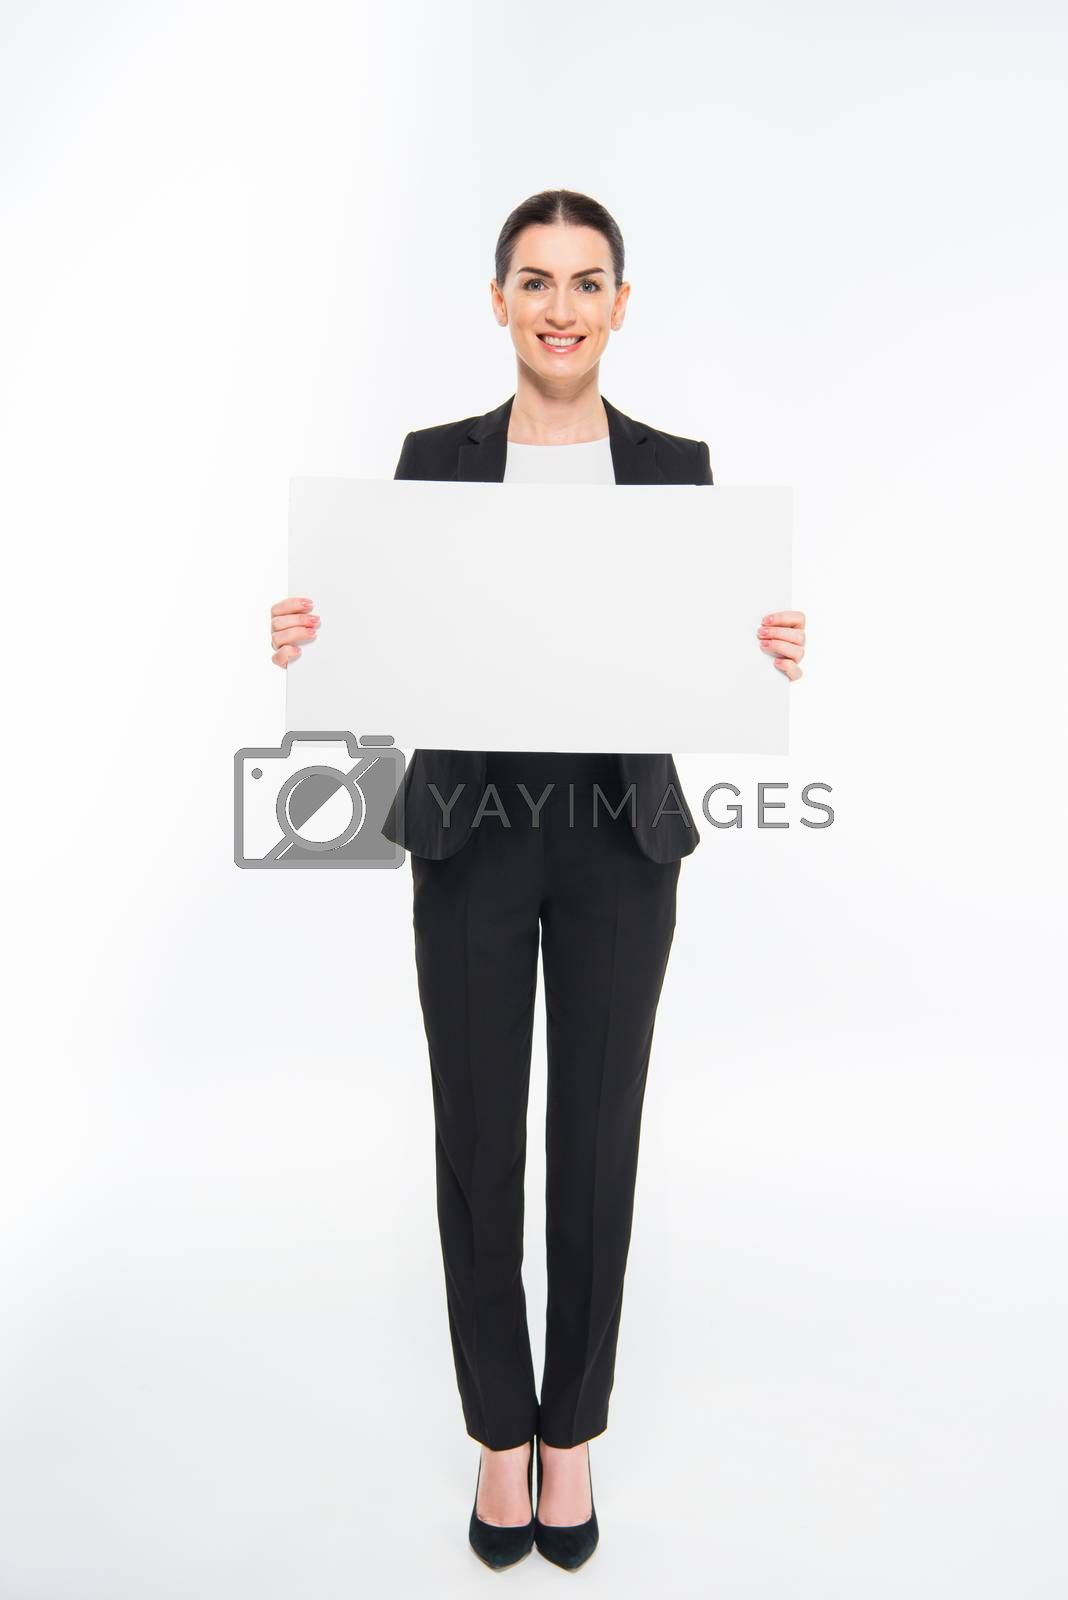 Smiling businesswoman holding blank white card and looking at camera